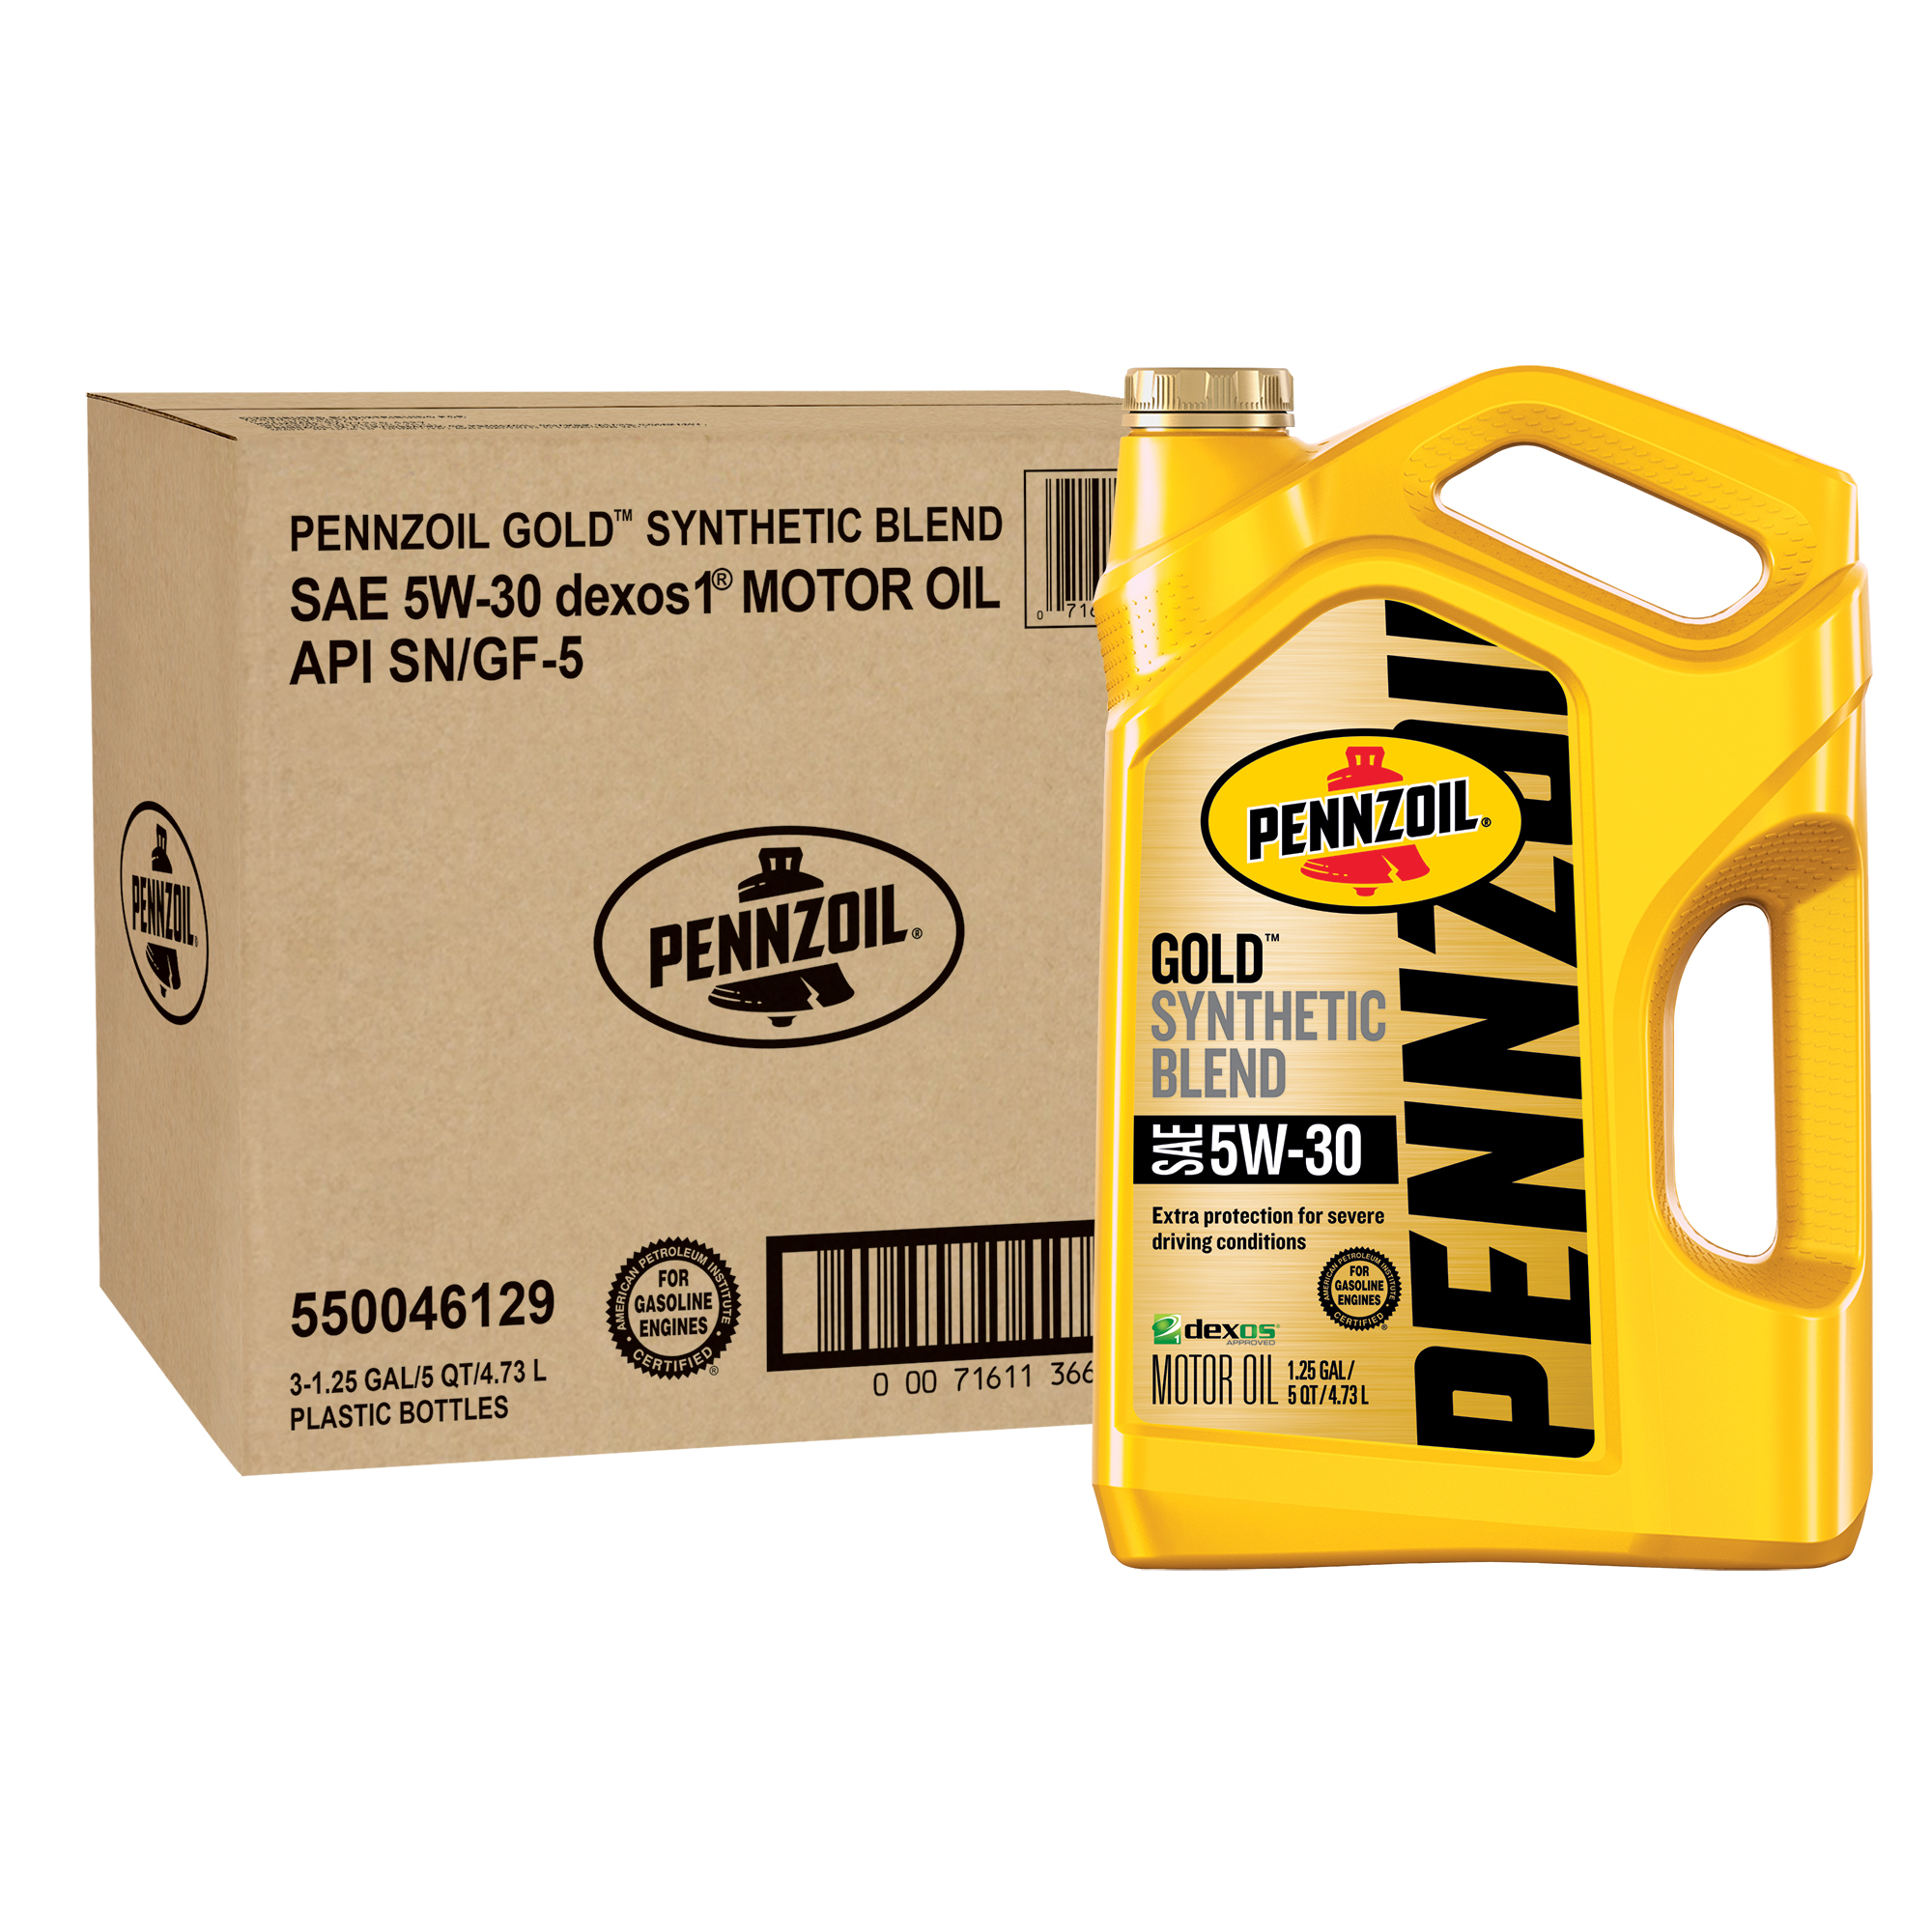 Pennzoil 5W-30 Synthetic Blend Motor Oil, 5-qt.